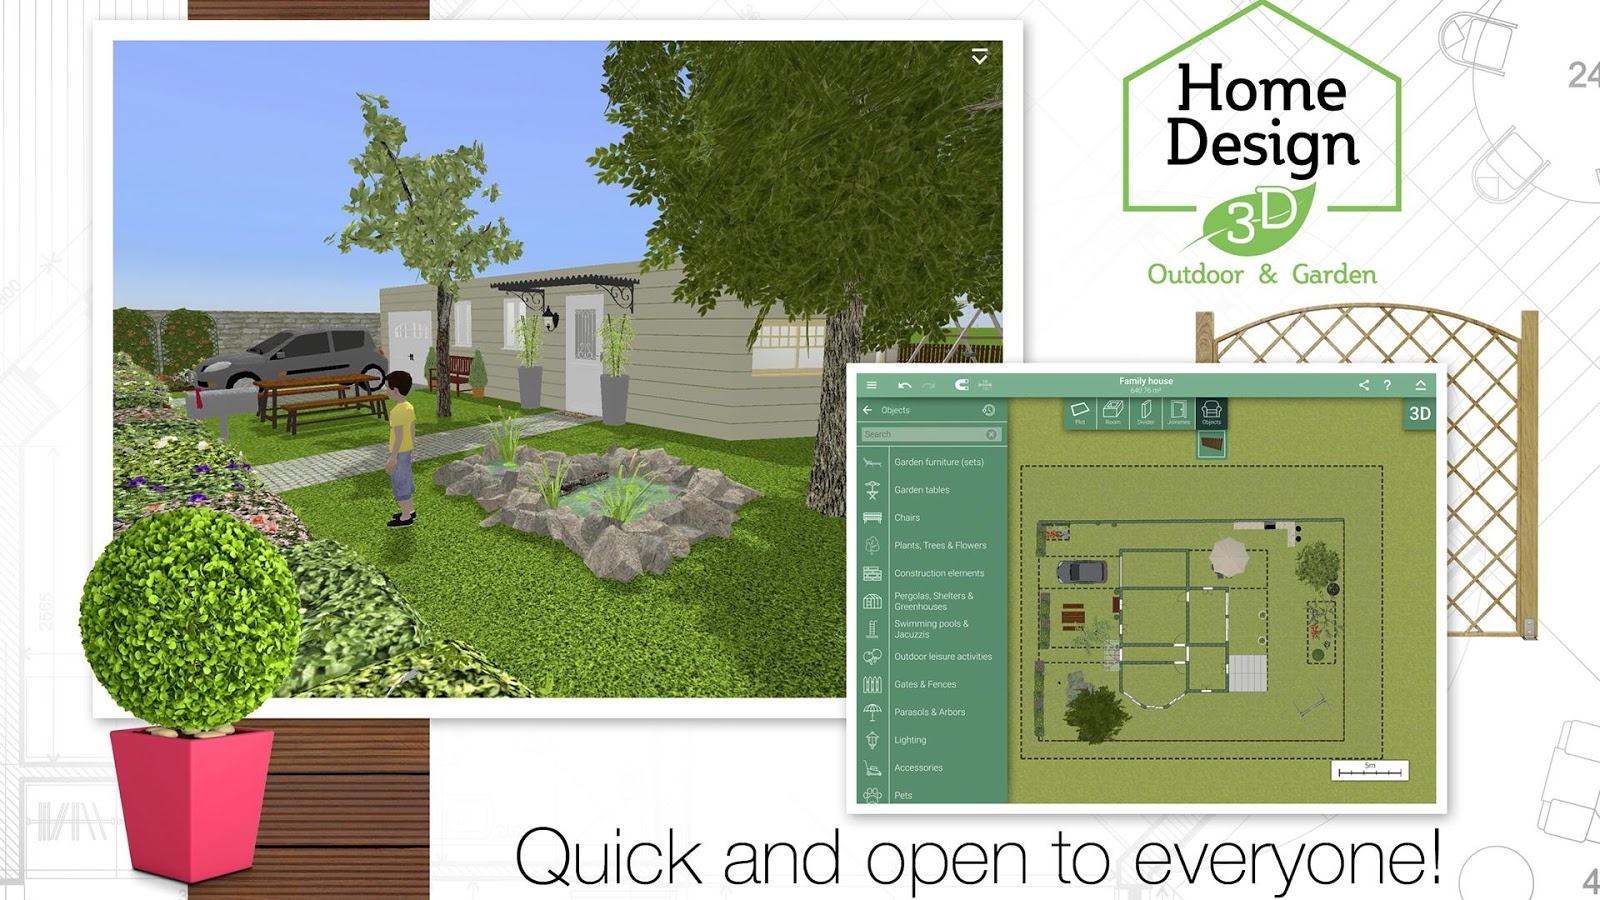 Home Design 3d Outdoor Garden Android Apps On Google Play: free 3d home design software for pc